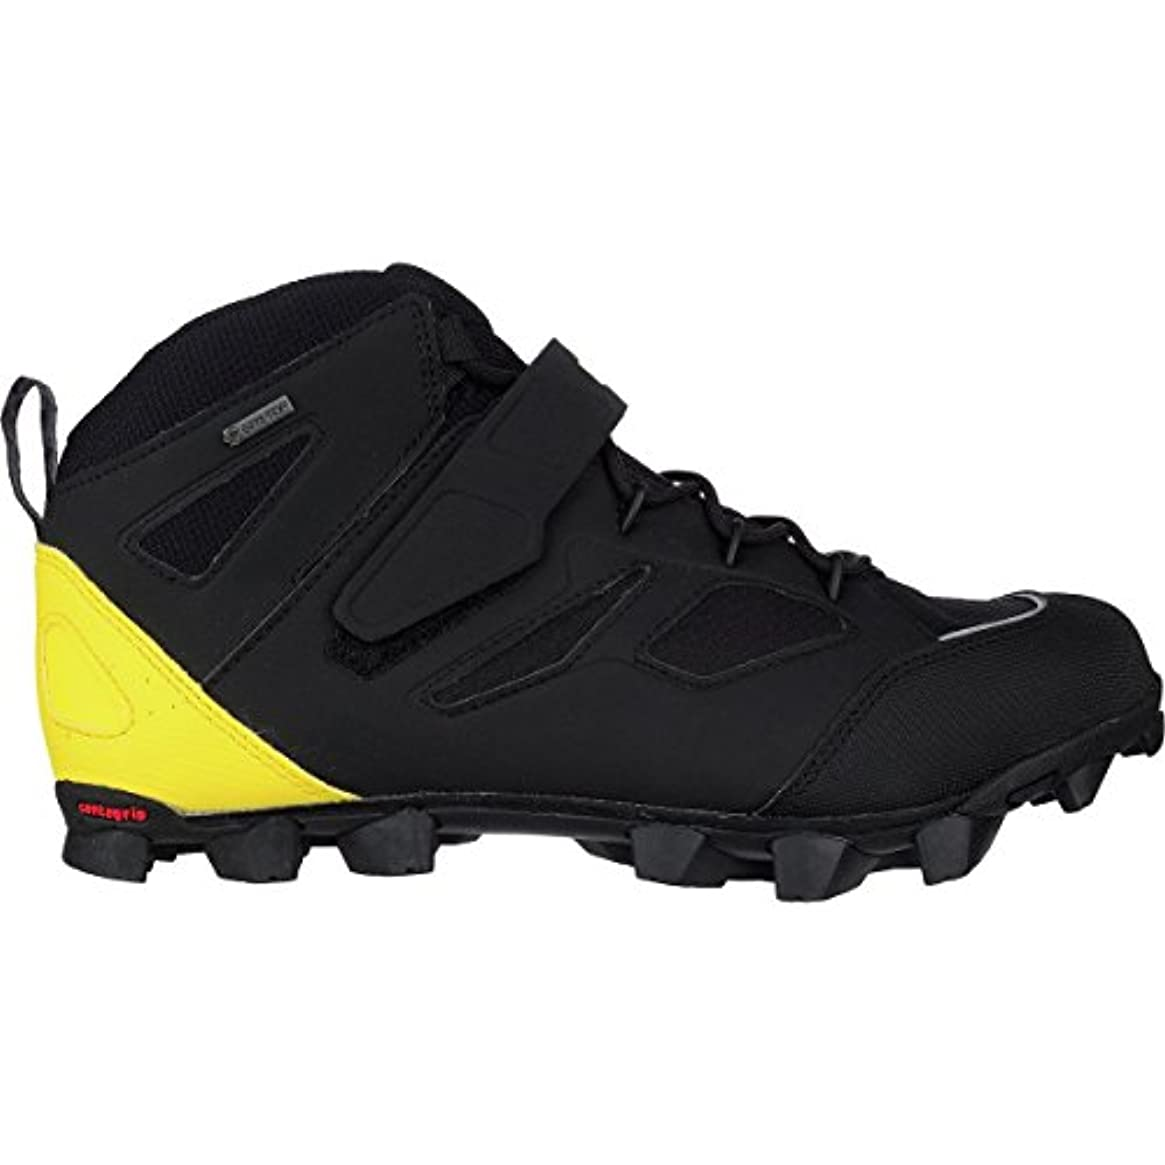 花火用心するレパートリーMavic XA Pro h2o GTX Shoe – Men 's Black/Yellow Mavic/ブラック、US 11.5 / UK 11.0